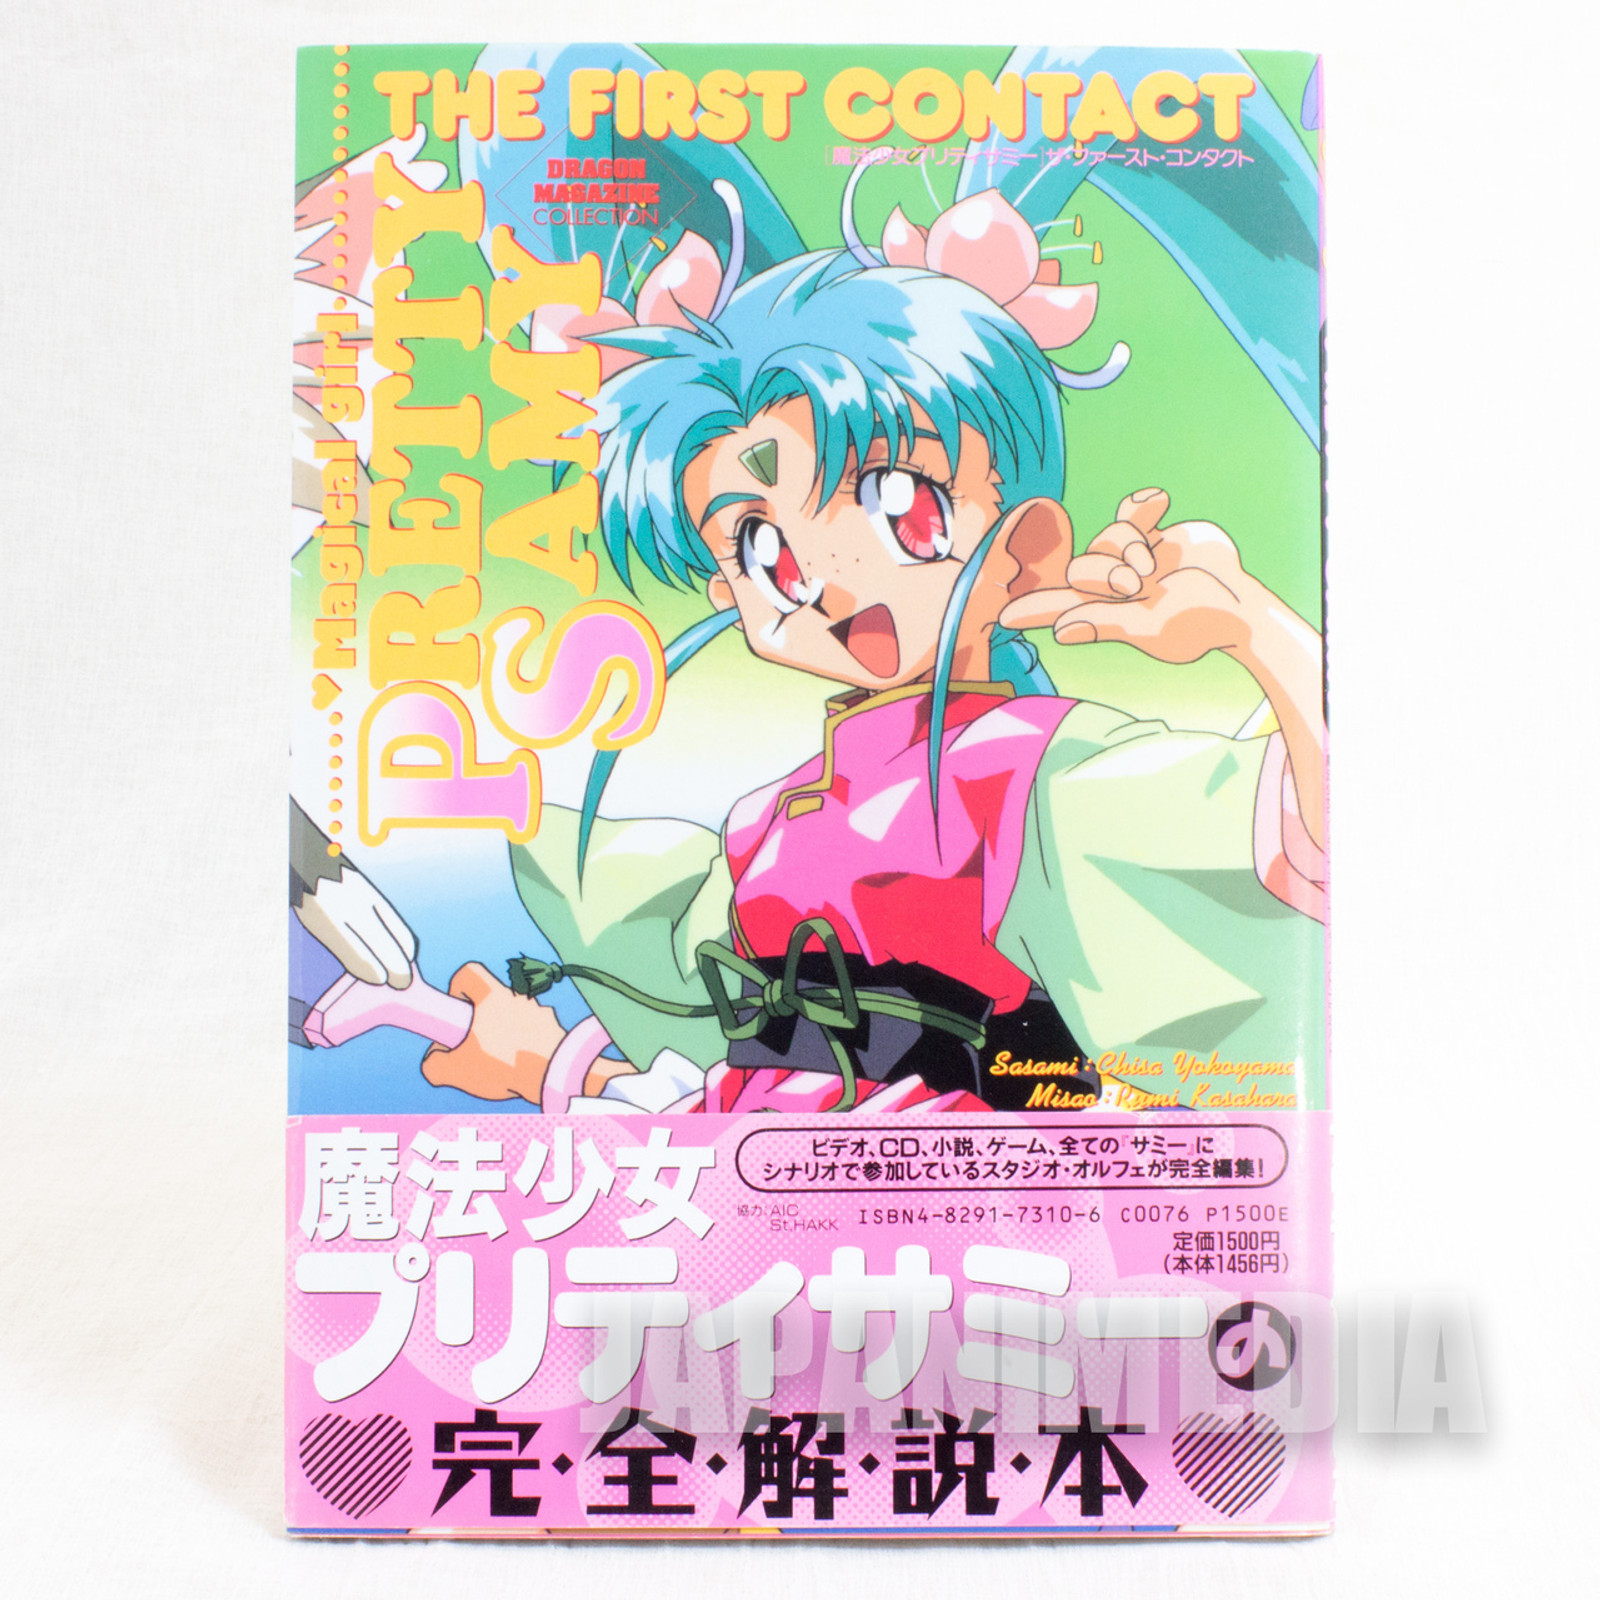 Magical Girl Pretty Samy The First Contact Illustration Art Book Tenchi Muyo!